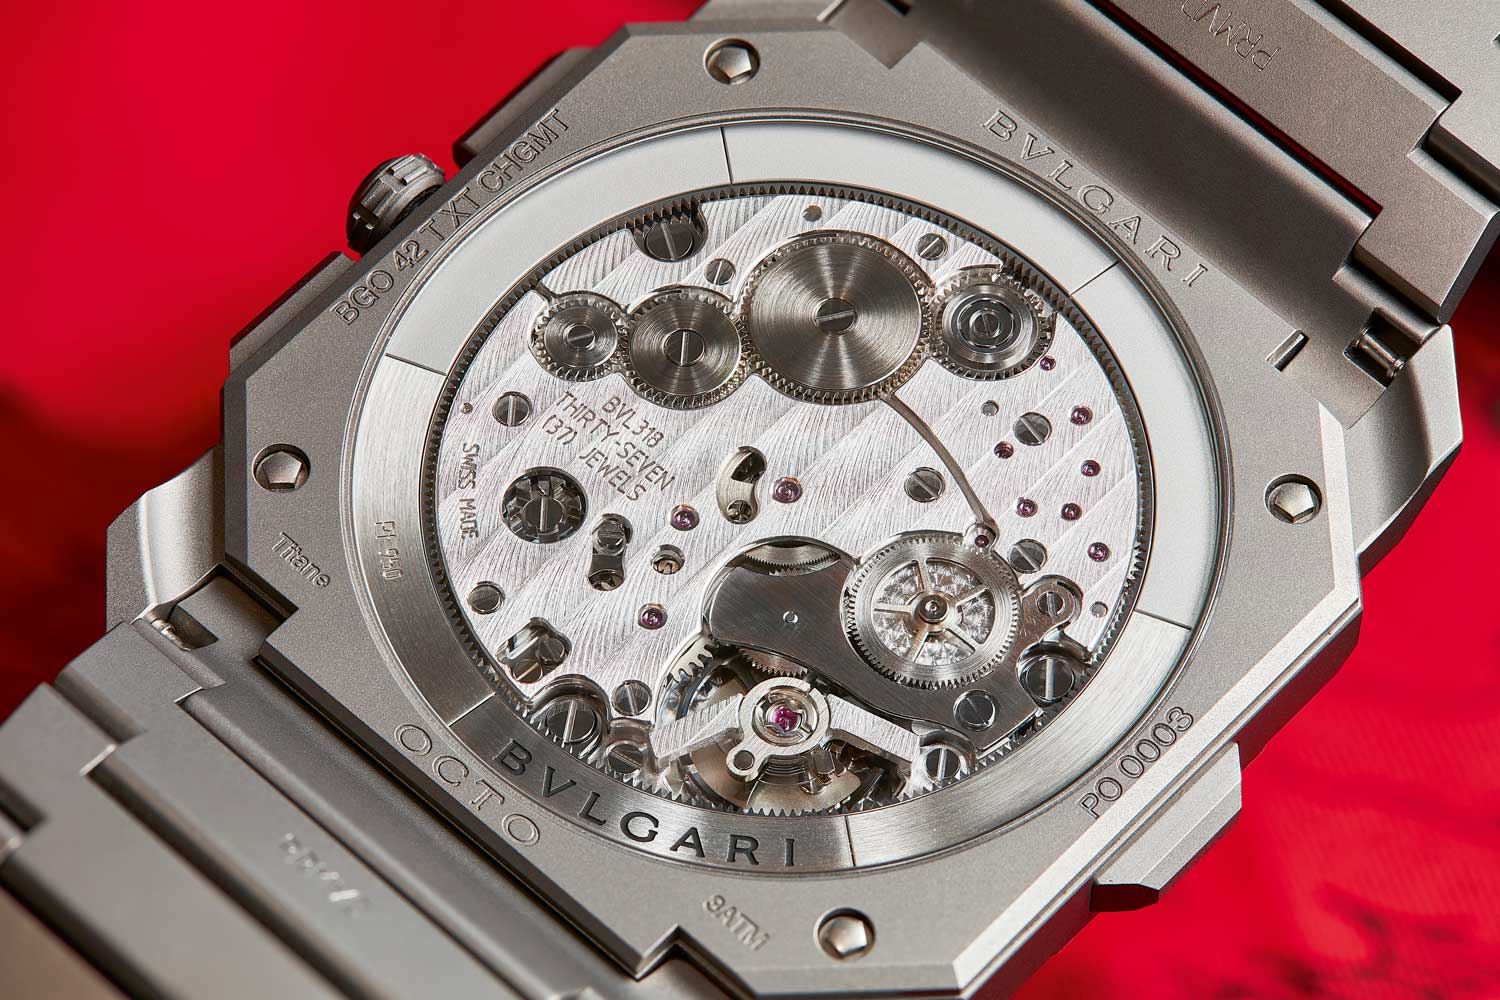 The automatic BVL 318 movement with periphery rotor powering the Octo Finissimo Chronograph GMT Automatic visible through its caseback (Image © Atom Moore)